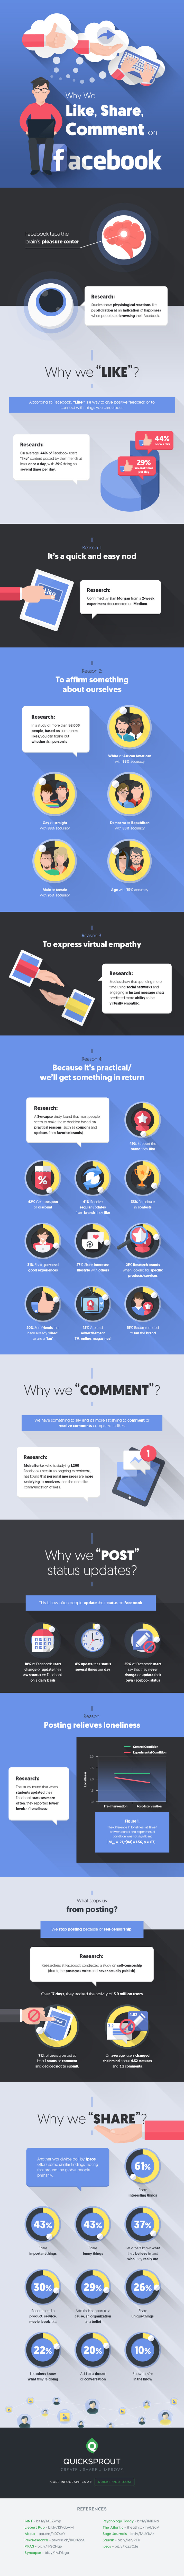 Why We Like, Comment, and Share on Facebook - #infographic